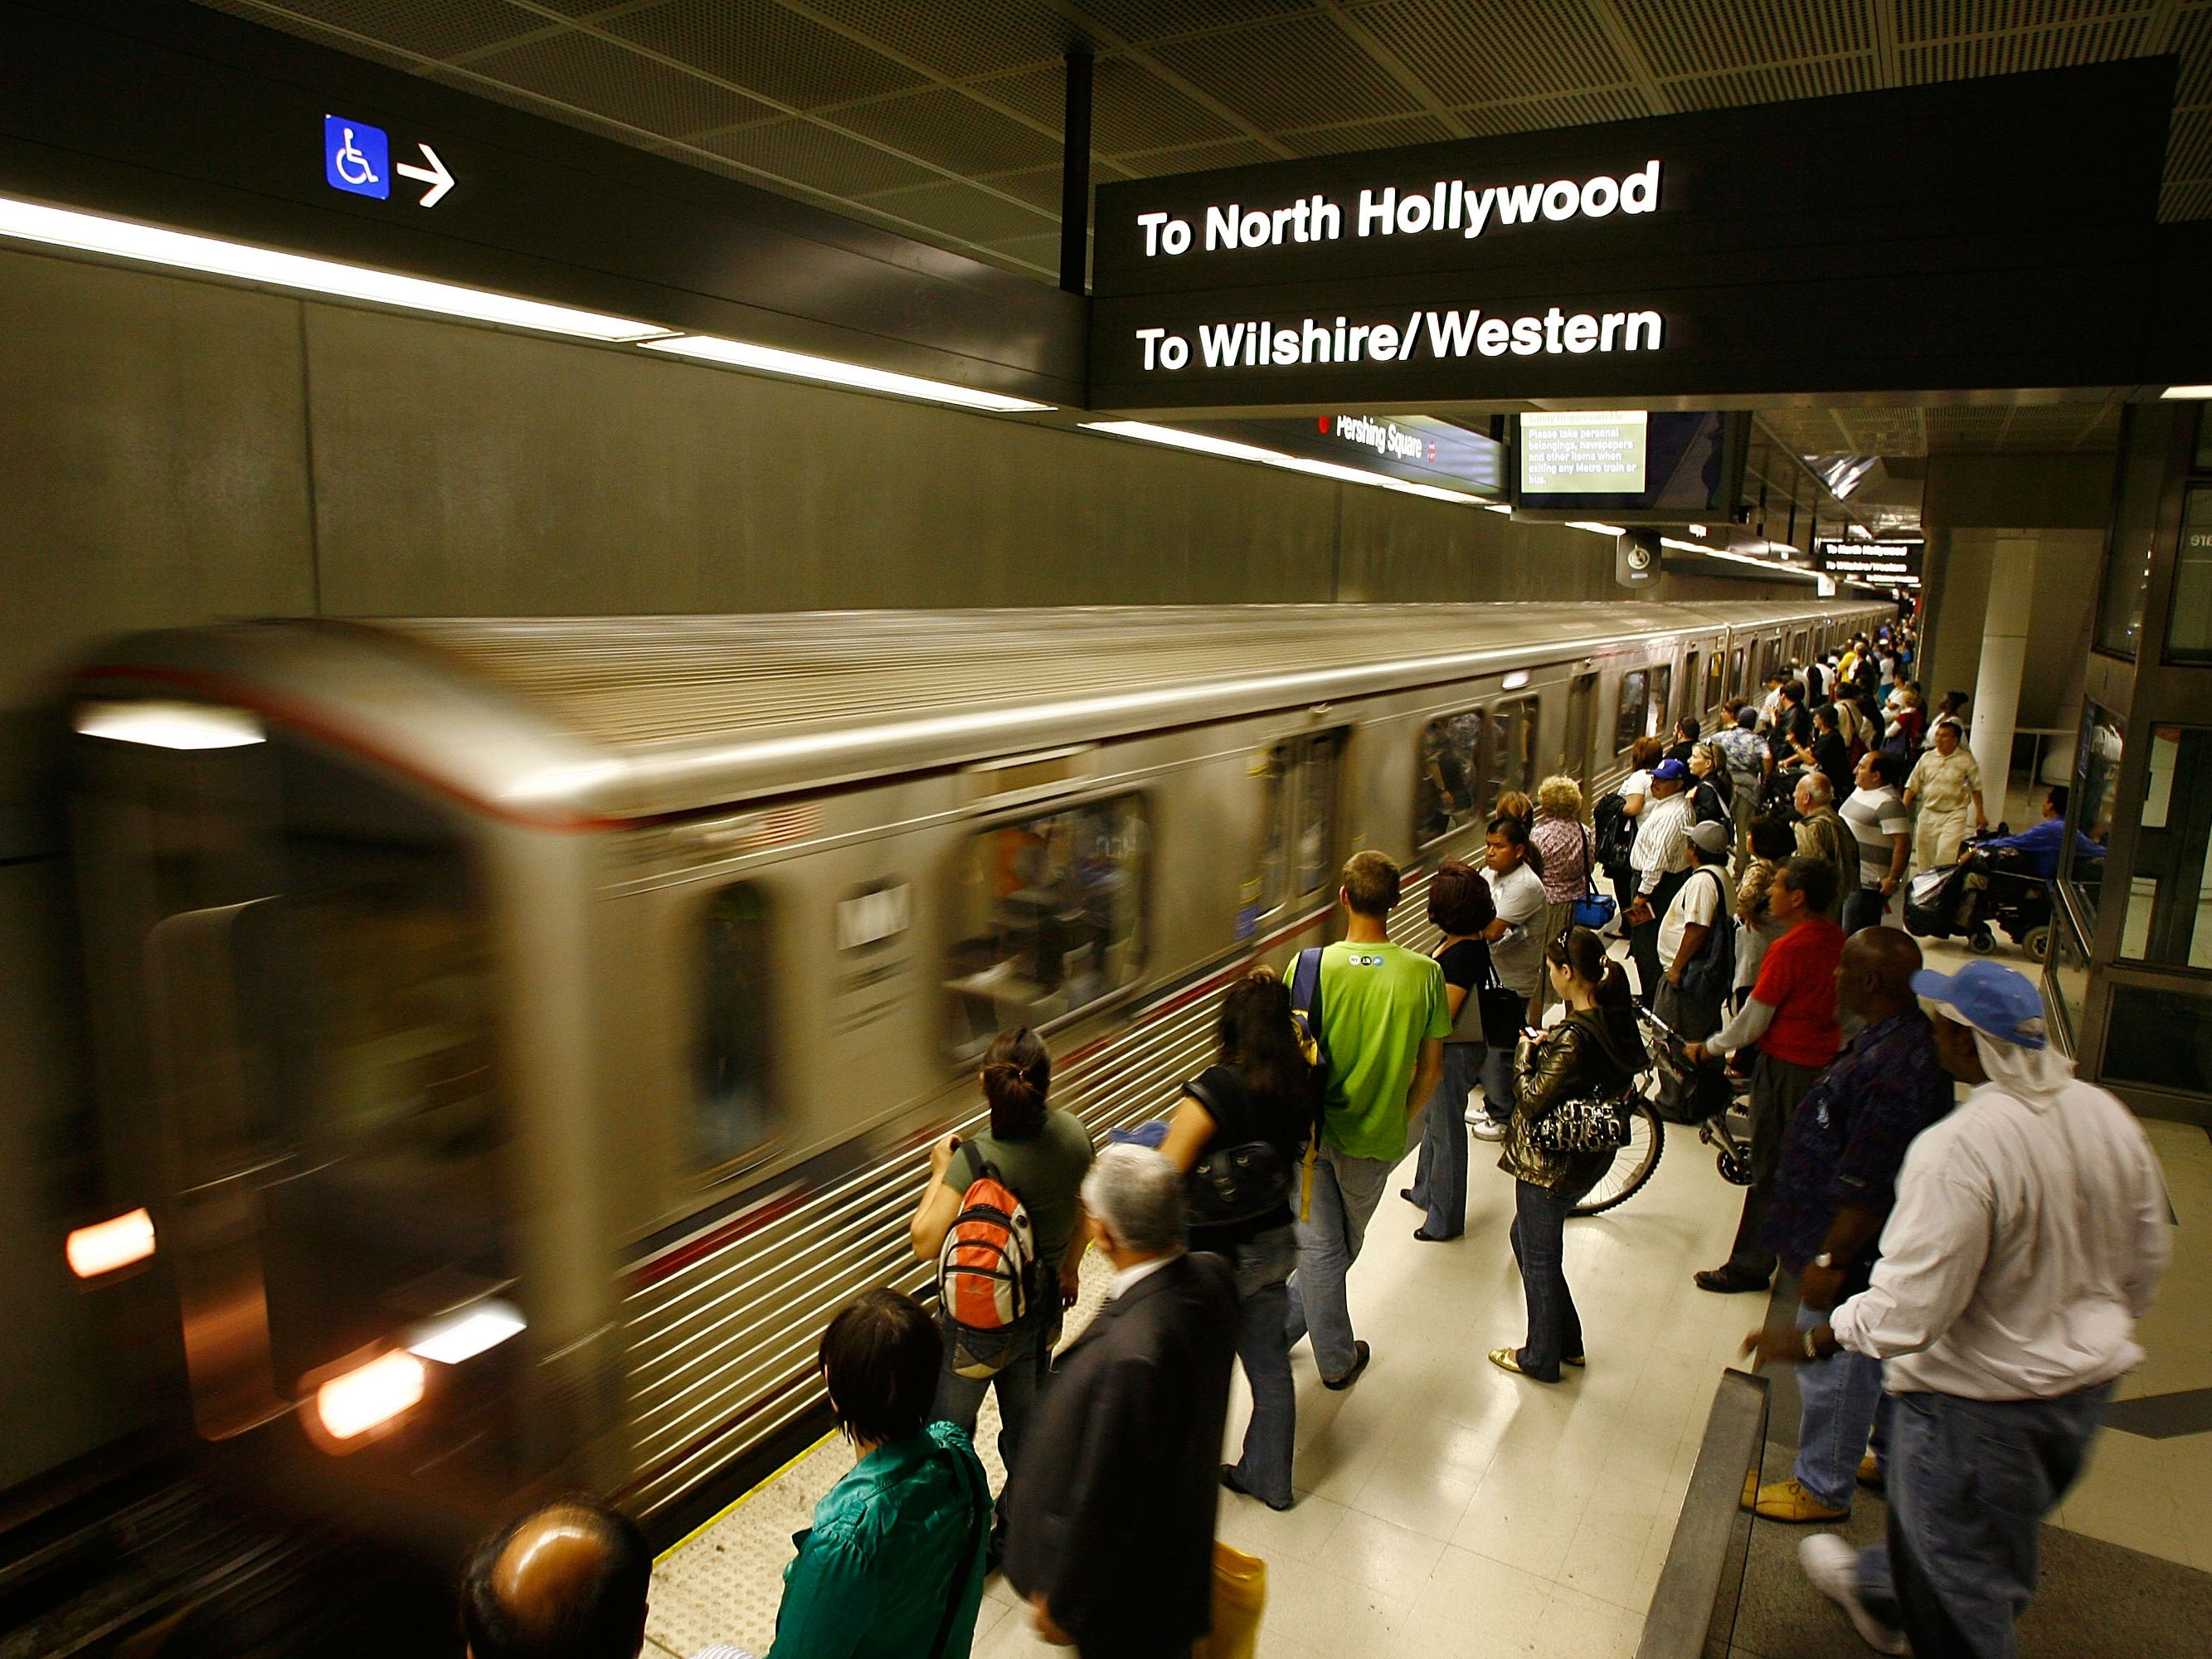 FBI investigates potential threat targeting Los Angeles metro train station